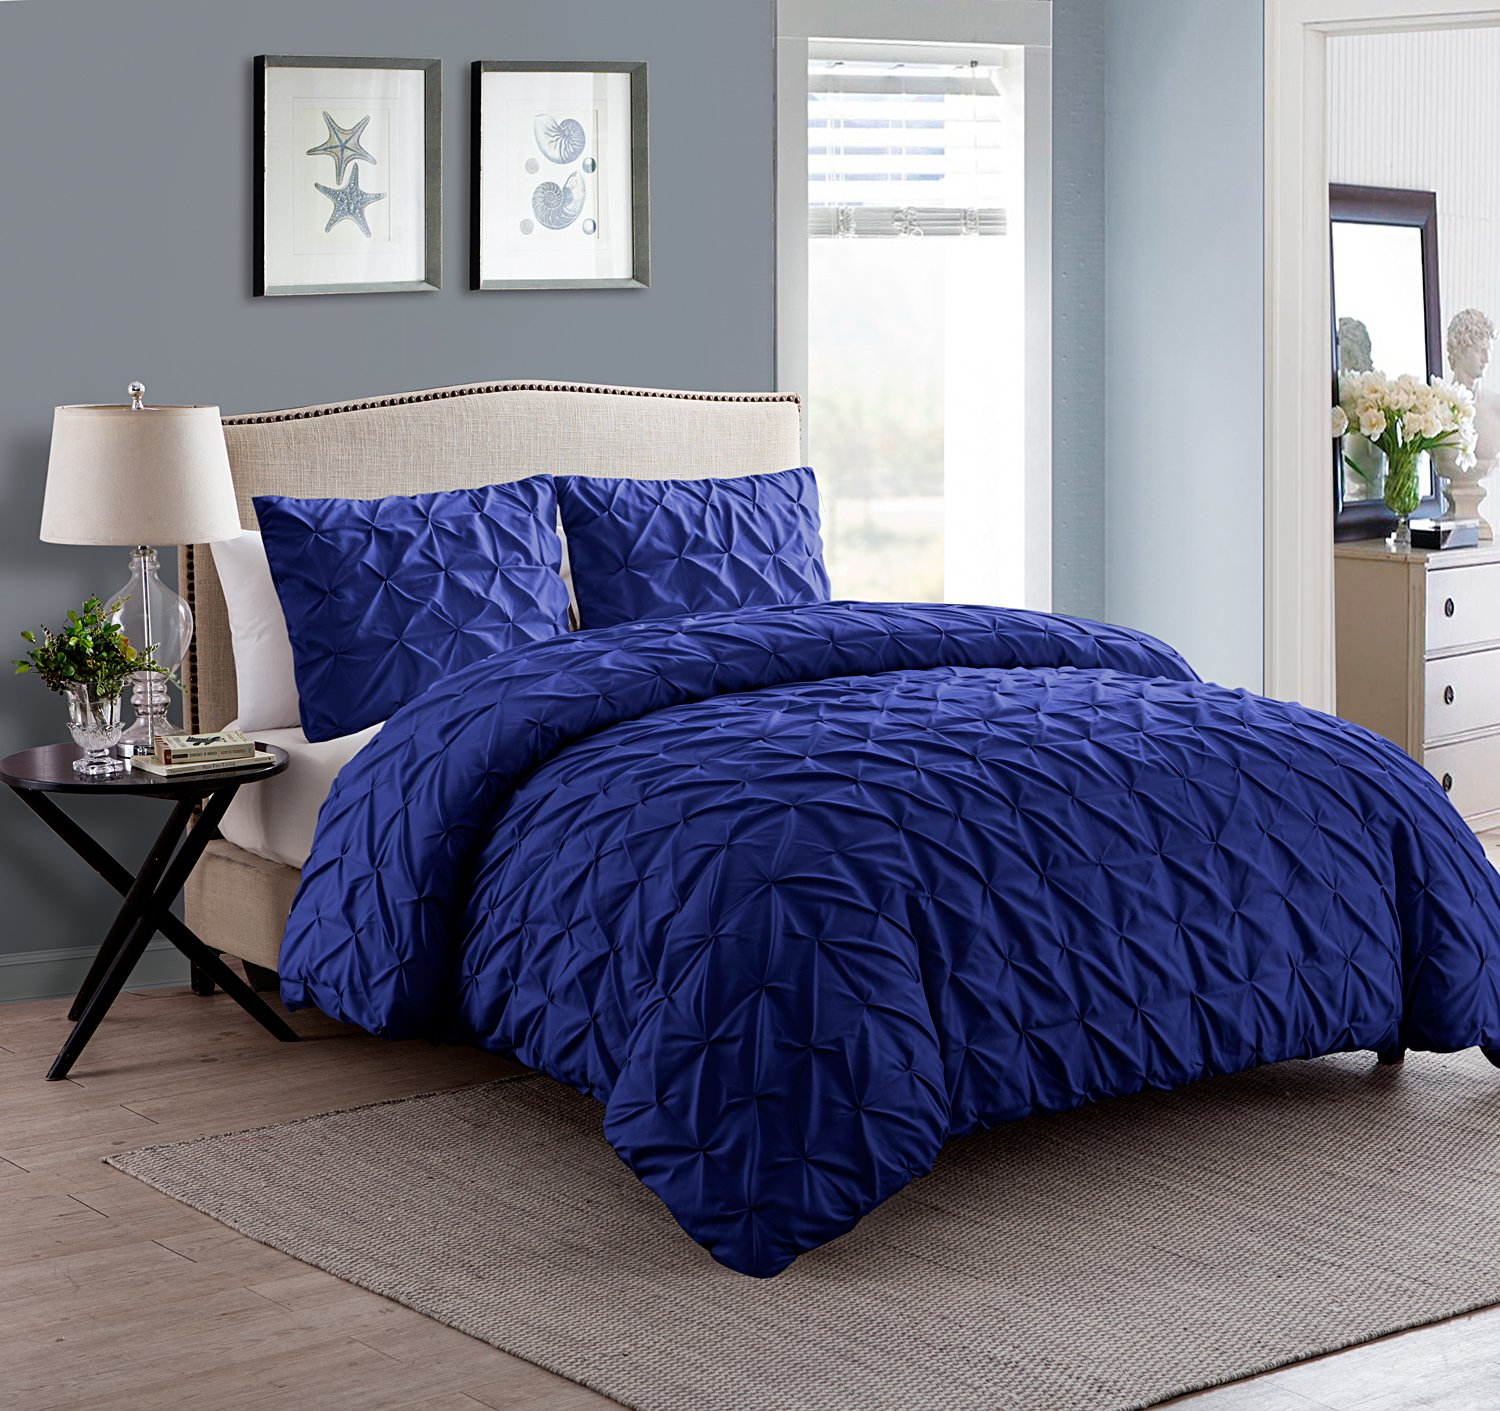 VCNY Home MAD-3DV-QUEN-IN-NV Duvet Cover Set, Queen, Navy